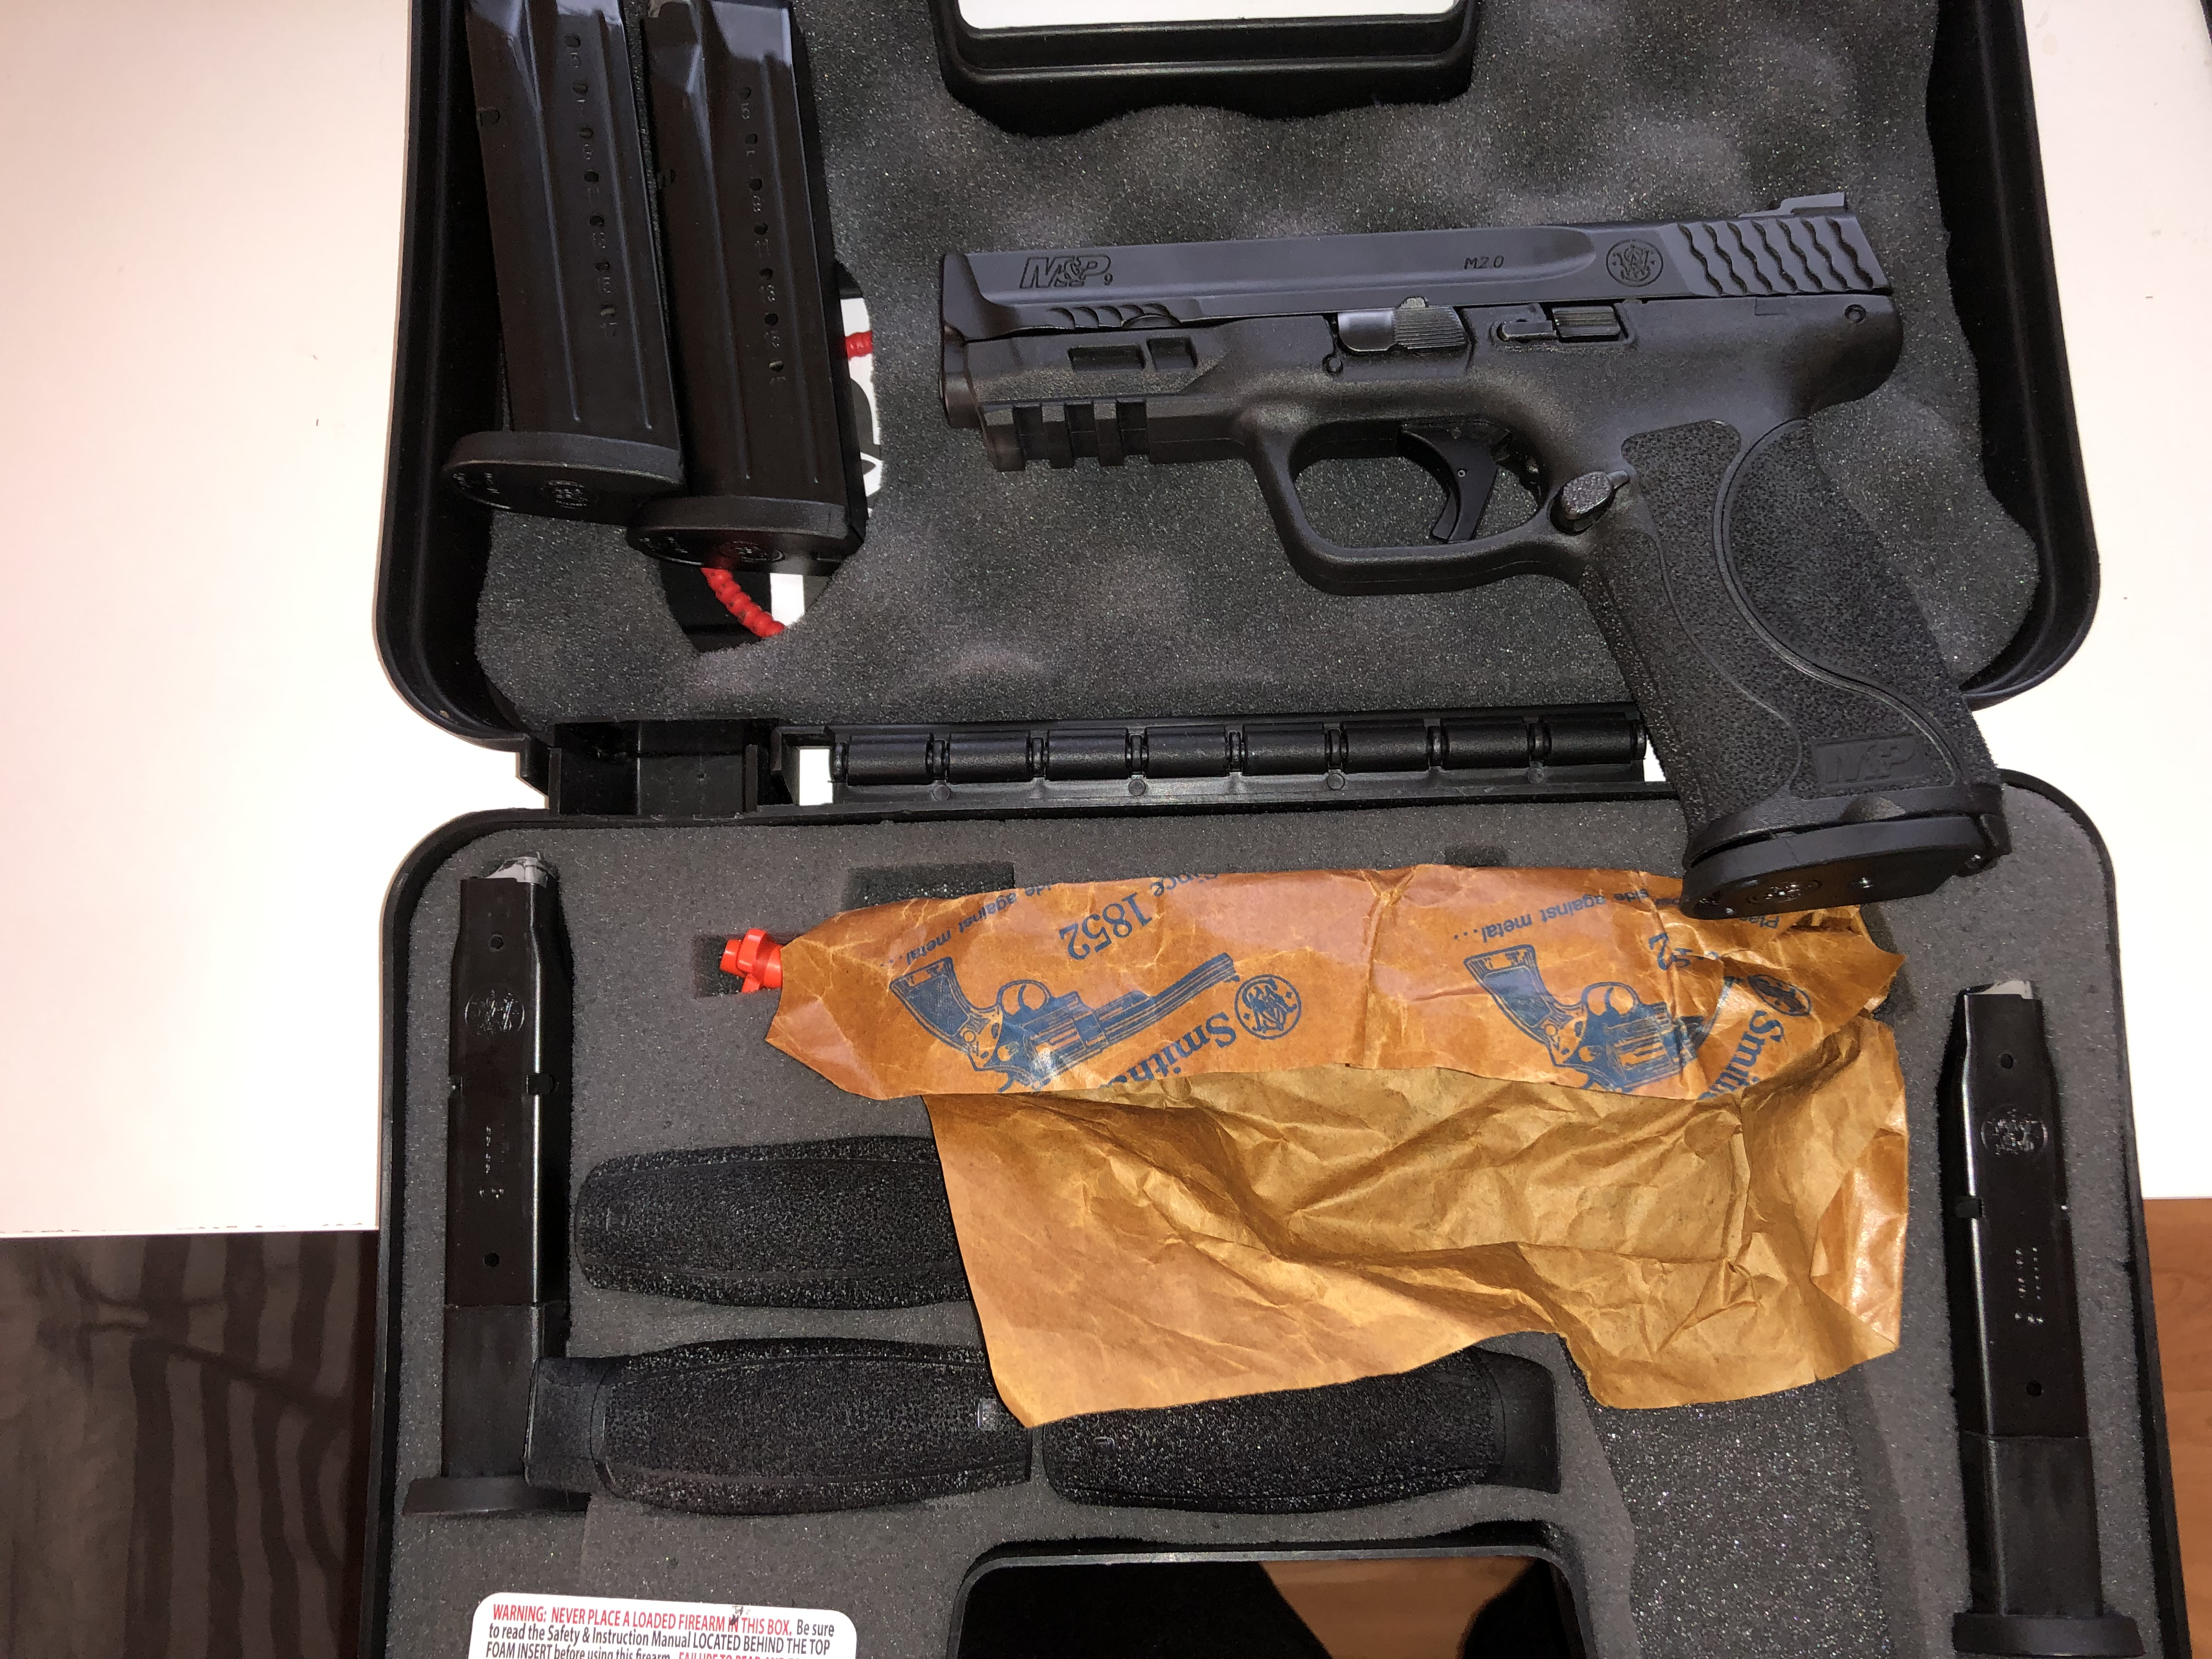 Smith and Wesson M&P 2 0 9mm (Auction ID: 14084127, End